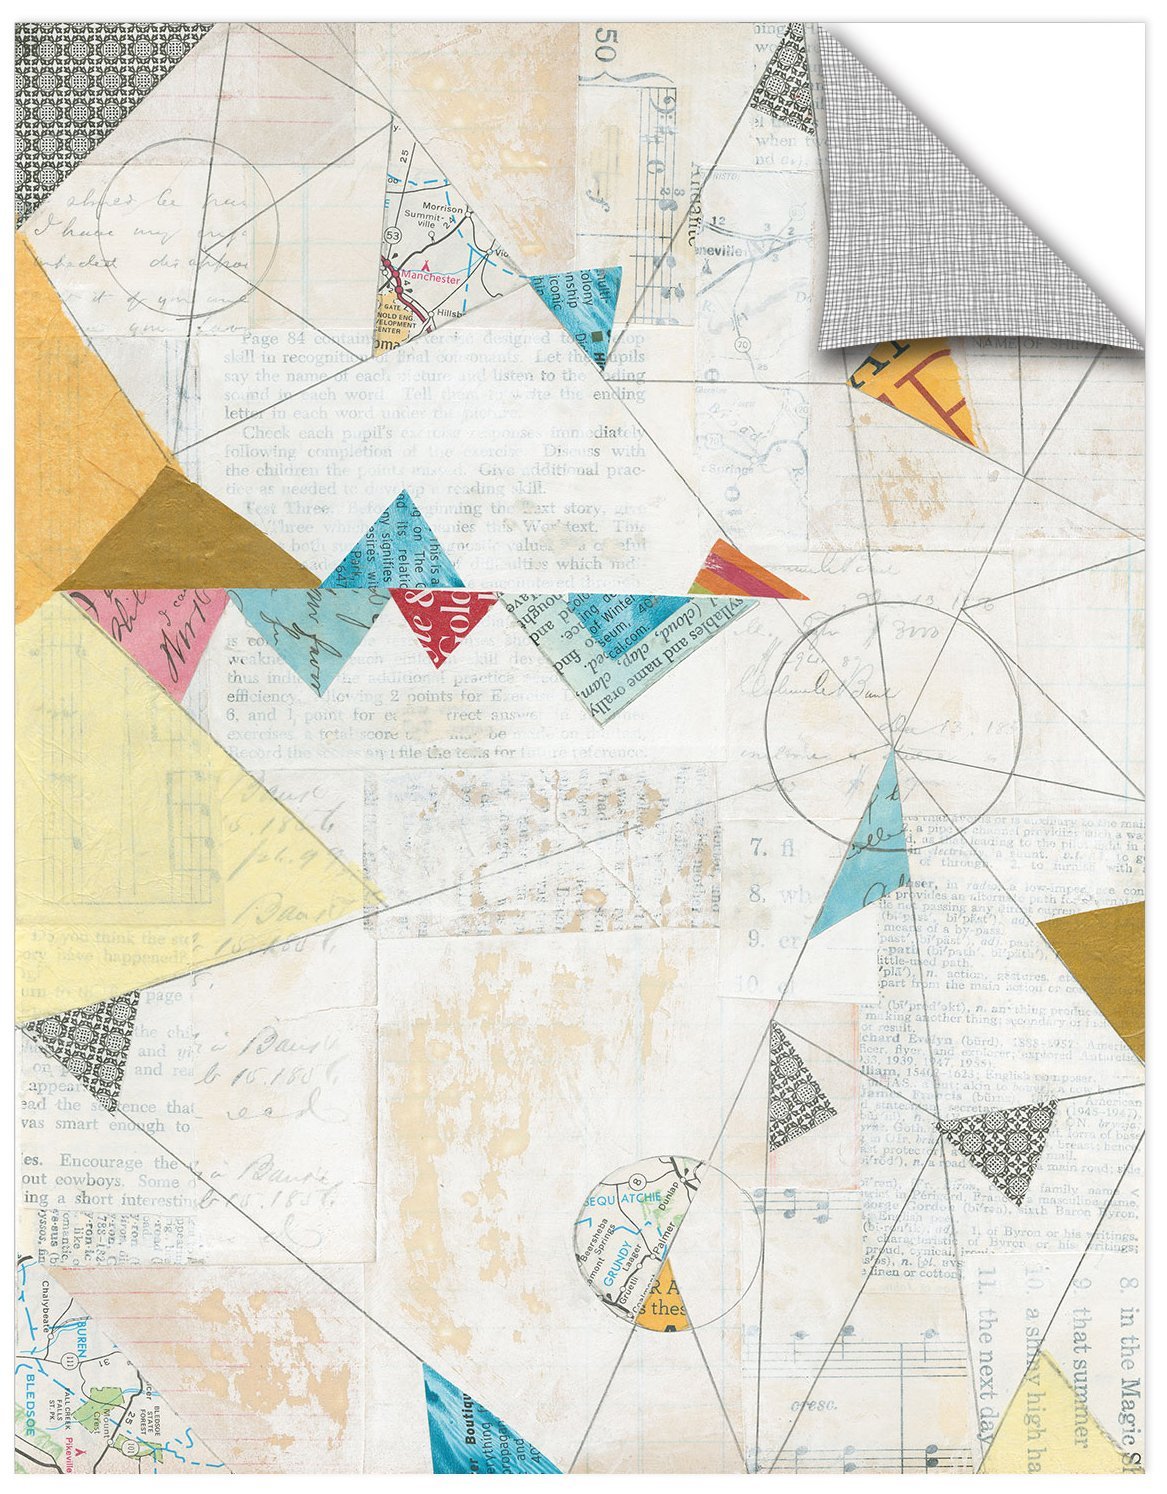 ArtWall Courtney Prahls Map Collage Removable Wall Art Mural 18 x 24